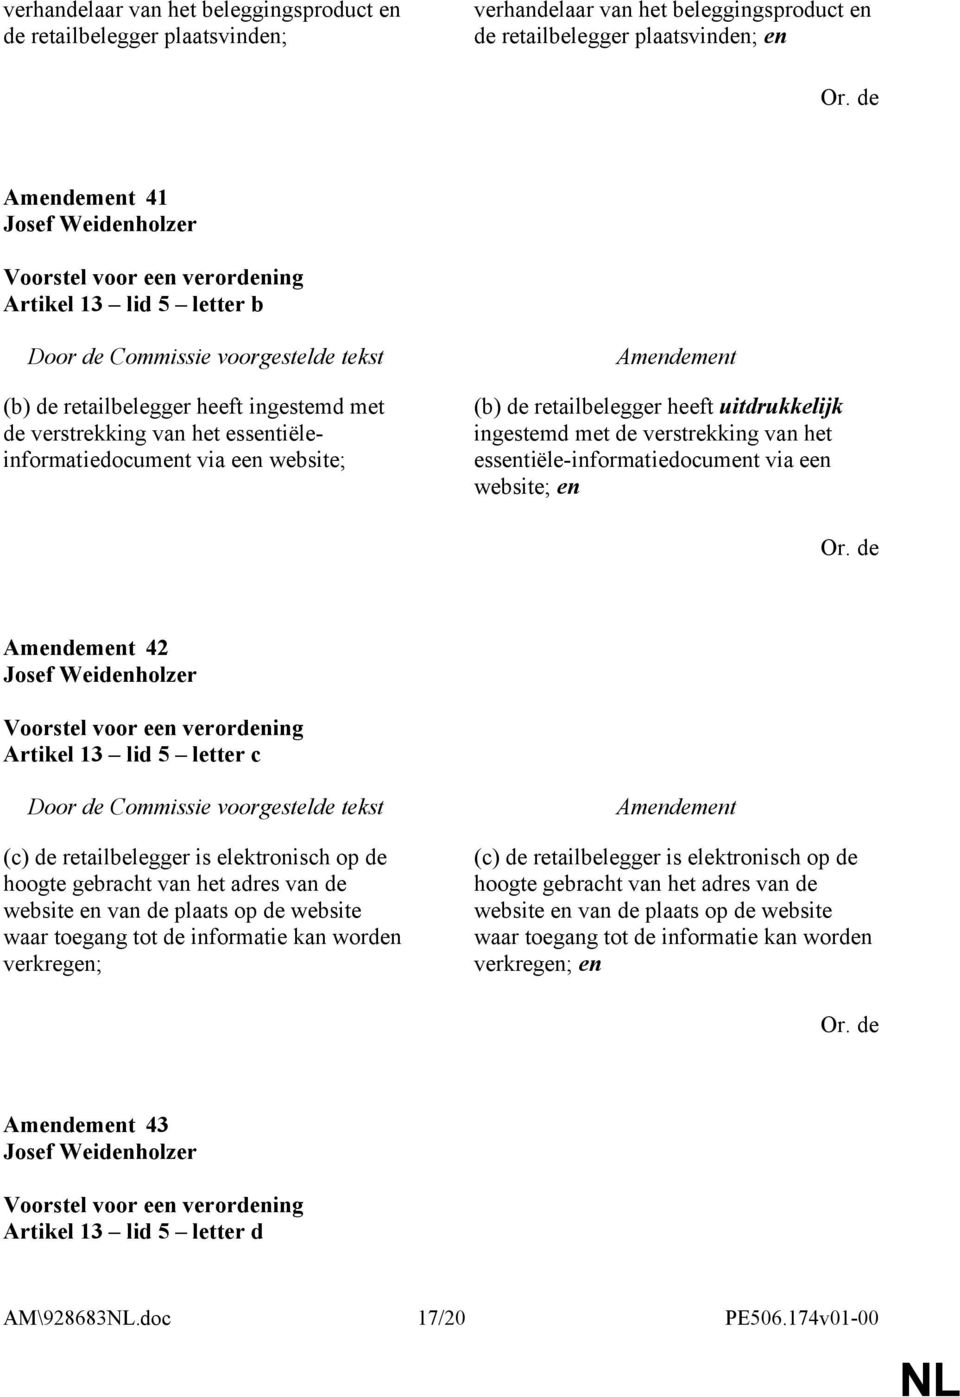 essentiële-informatiedocument via een website; en 42 Artikel 13 lid 5 letter c (c) de retailbelegger is elektronisch op de hoogte gebracht van het adres van de website en van de plaats op de website